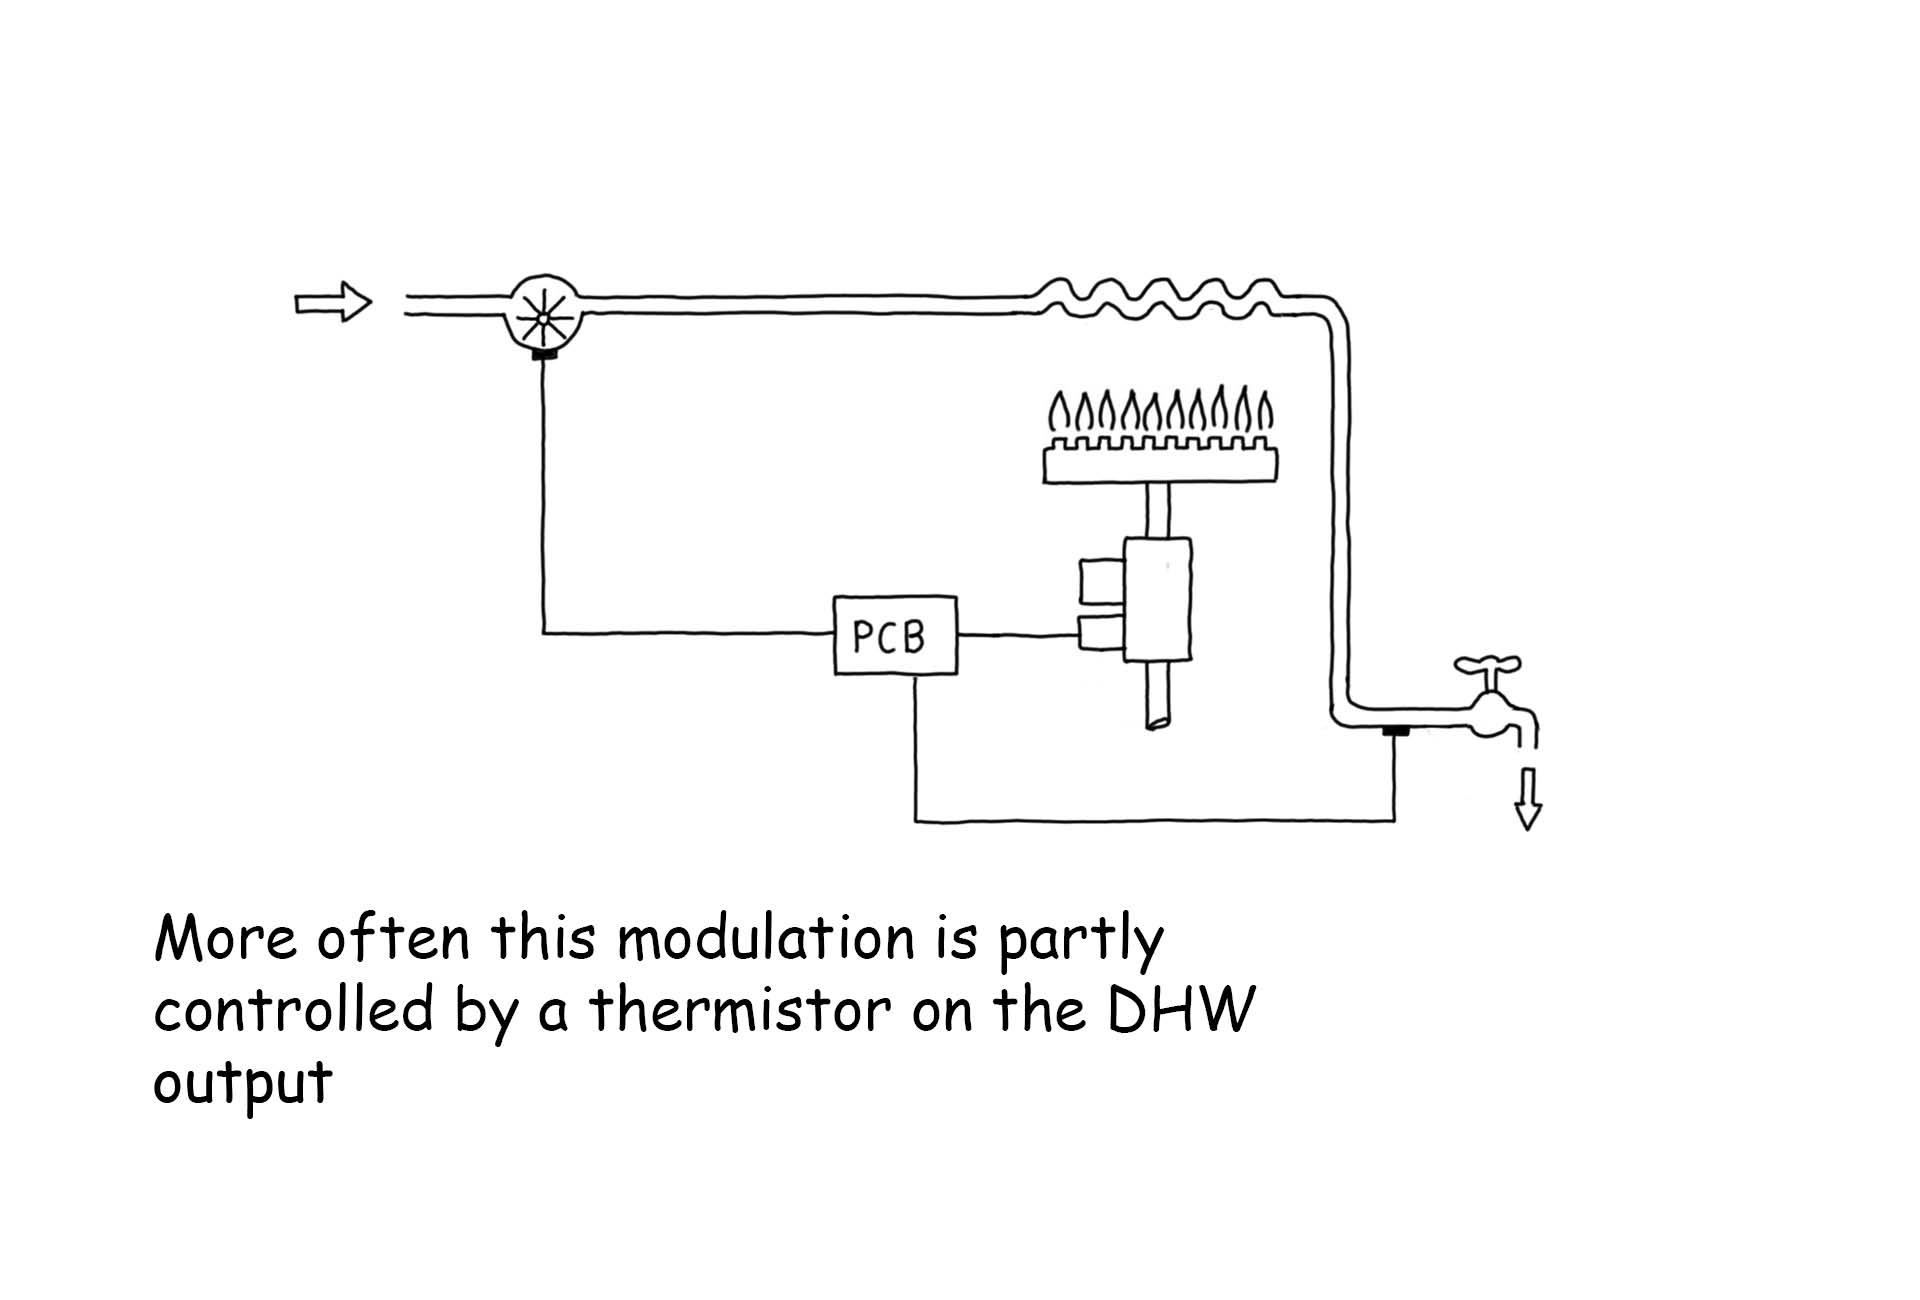 thermistor wiring diagram typical for house 25 images